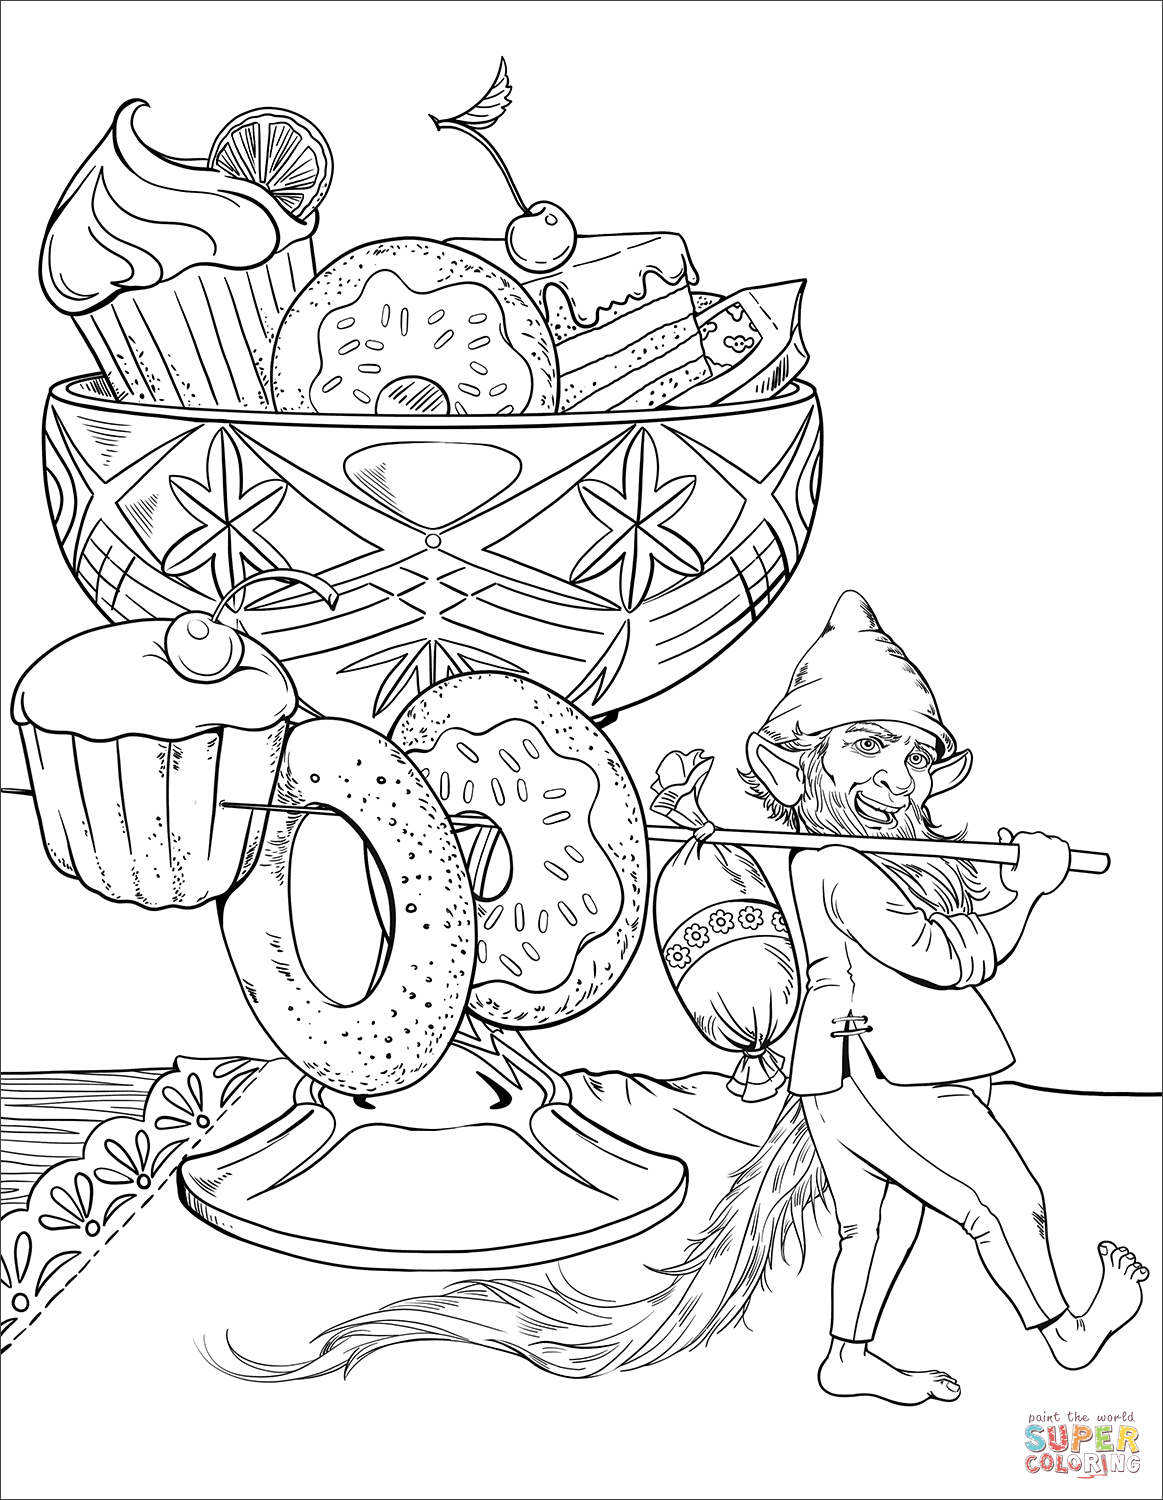 Gnome and His Dessert coloring page | Free Printable Coloring Pages